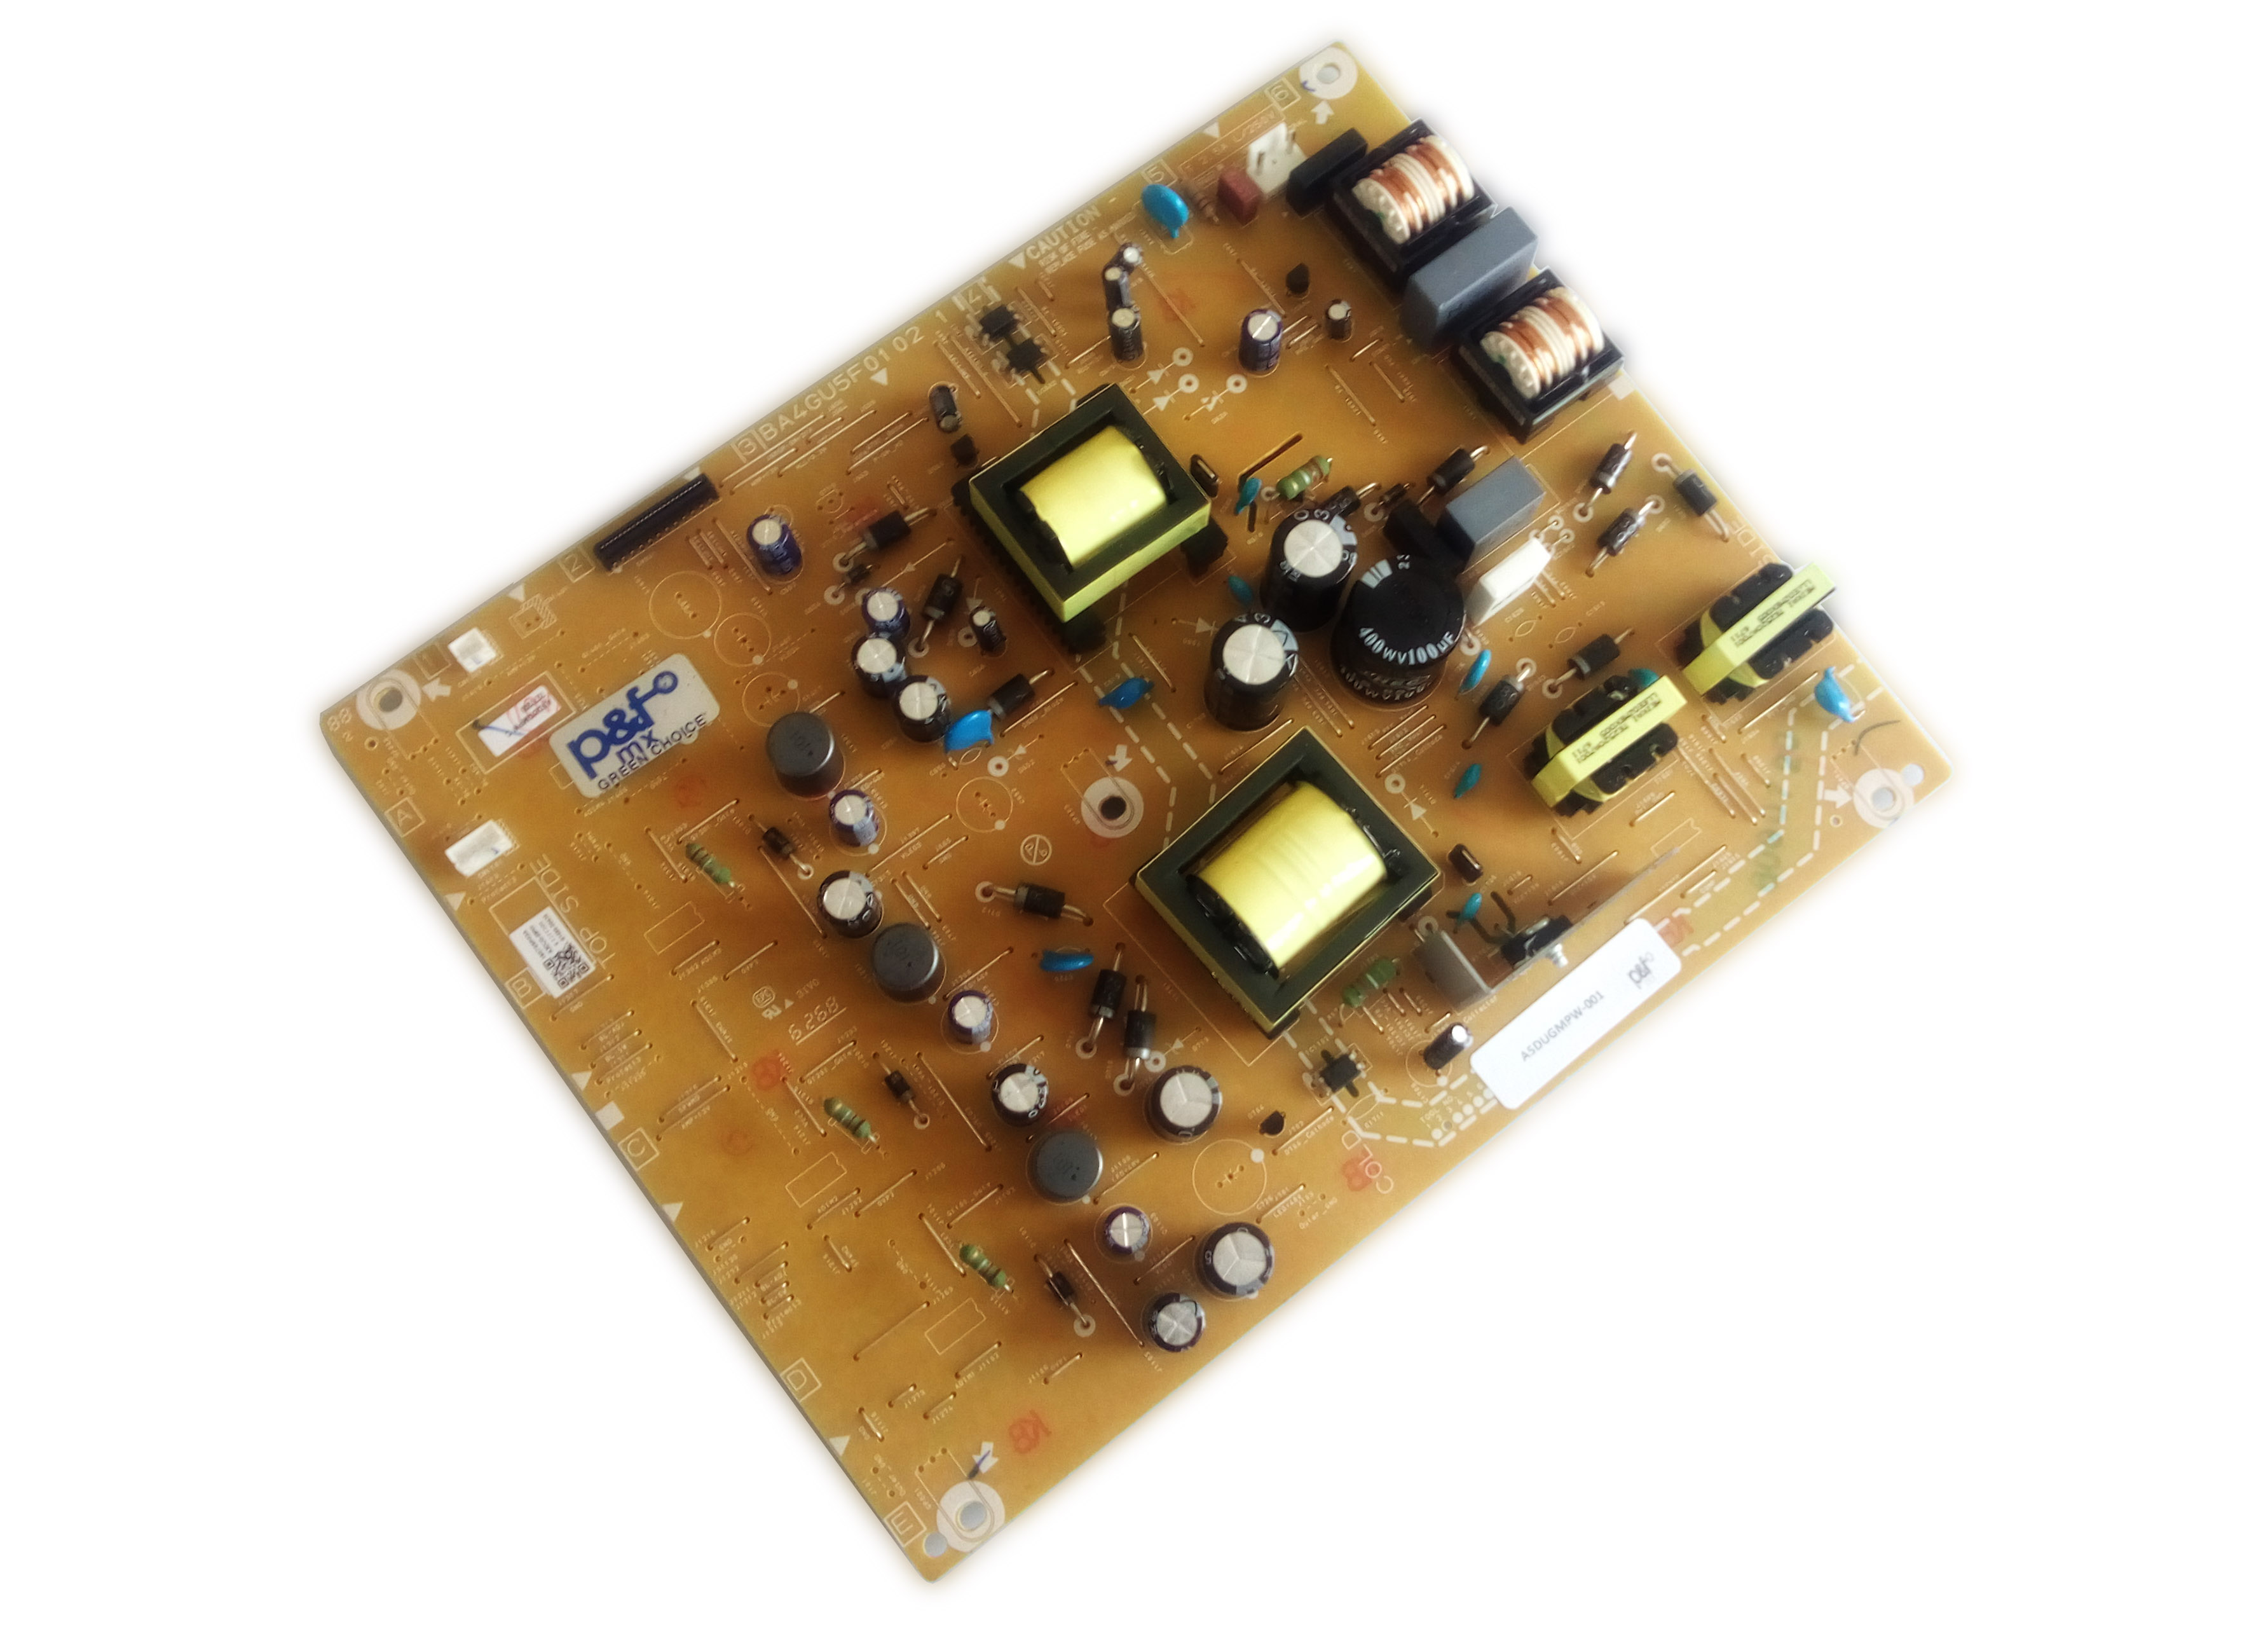 A5DUGMPW-001 POWER SUPPLY 50PFL4901/F8